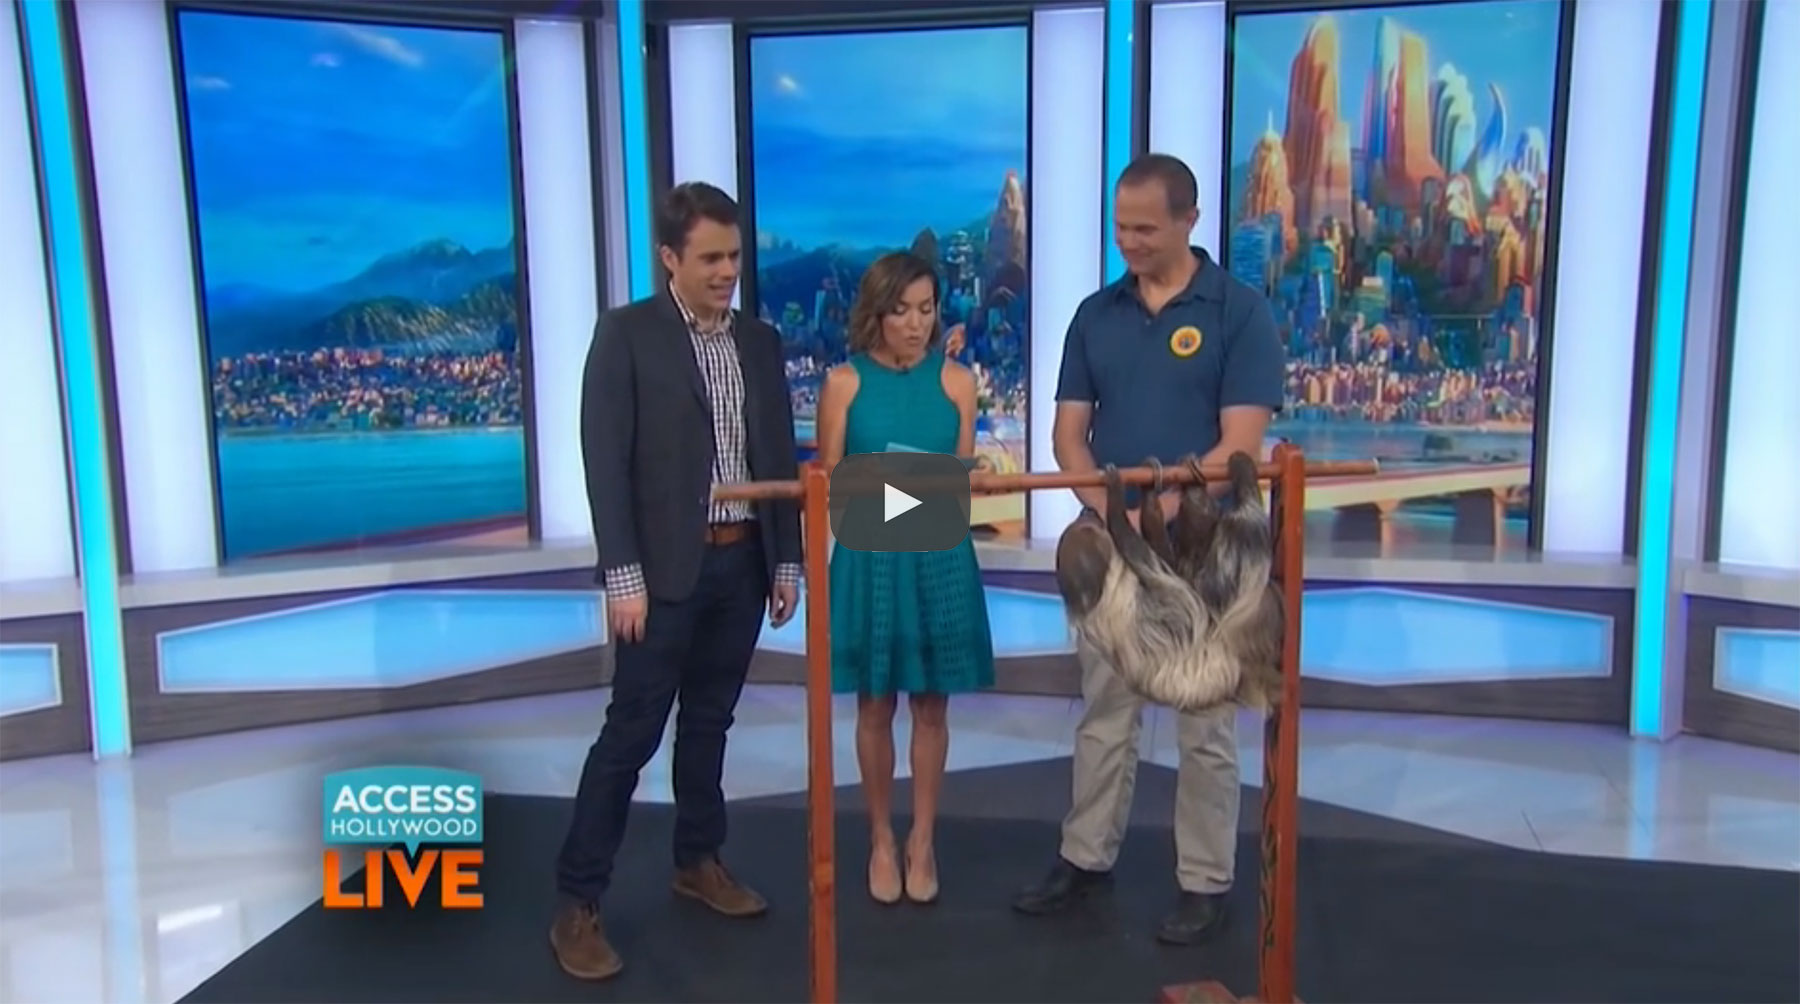 Access Hollywood - zootopia